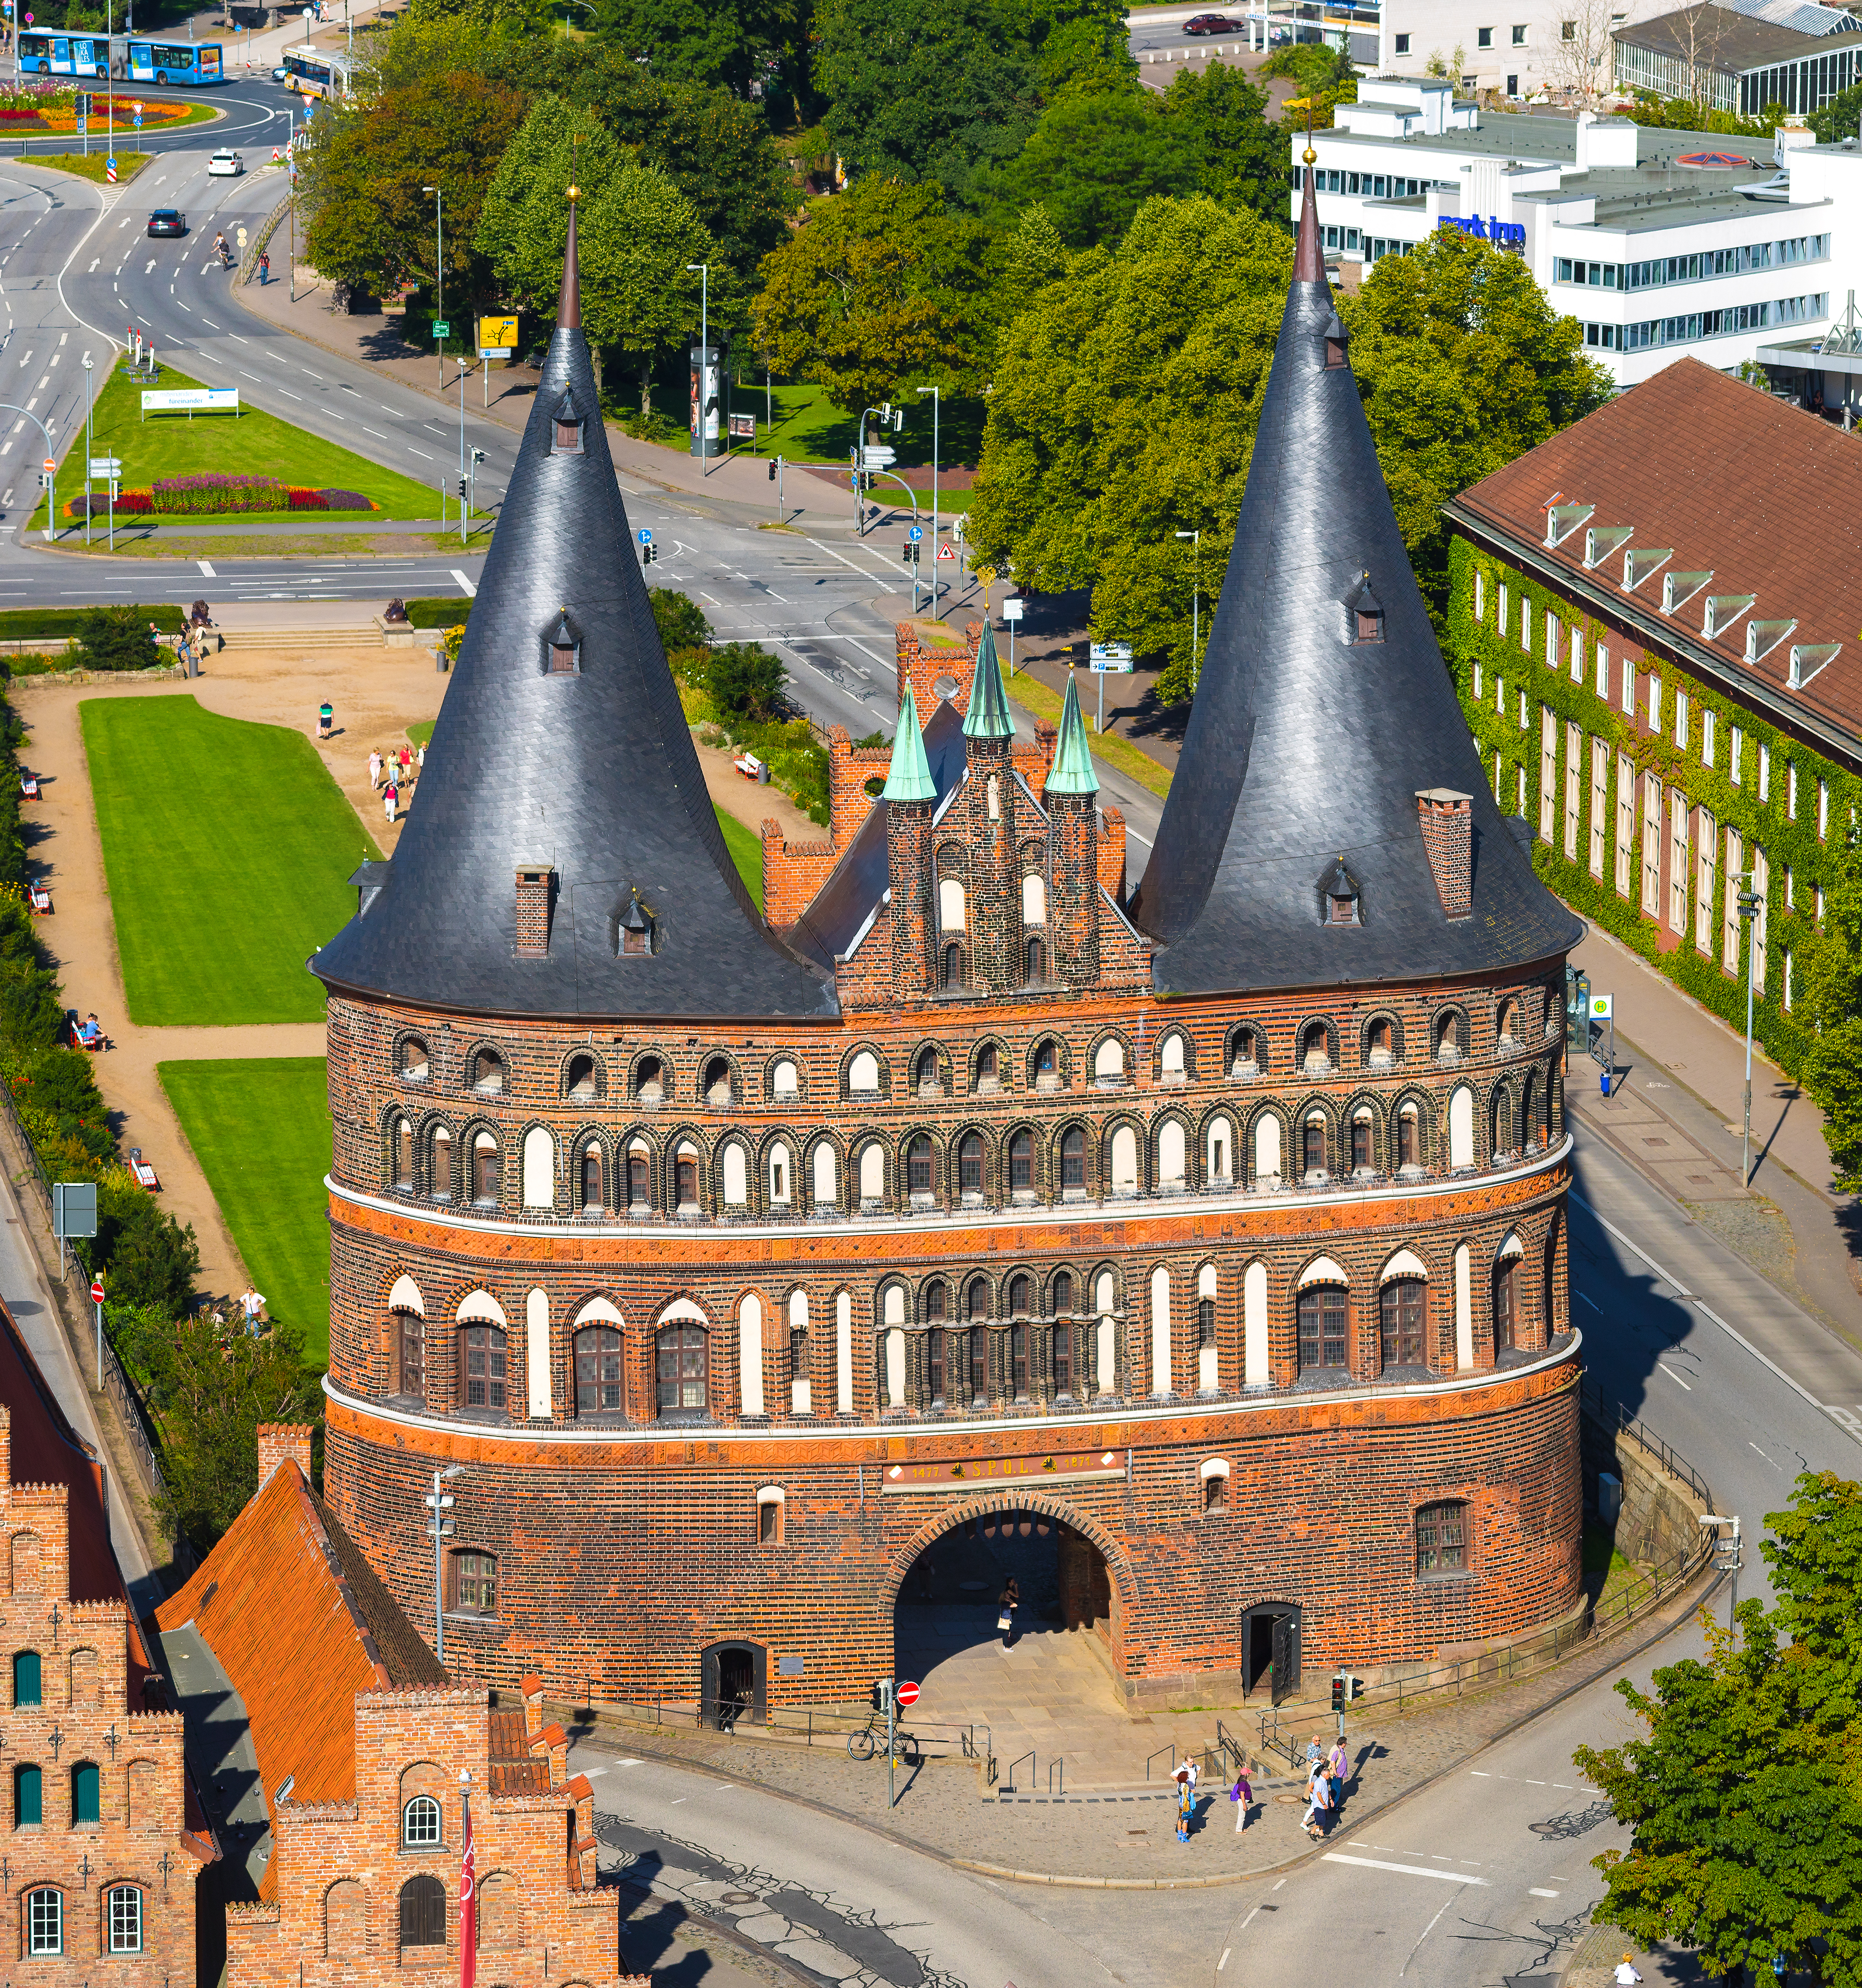 Holstentor Wikipedia